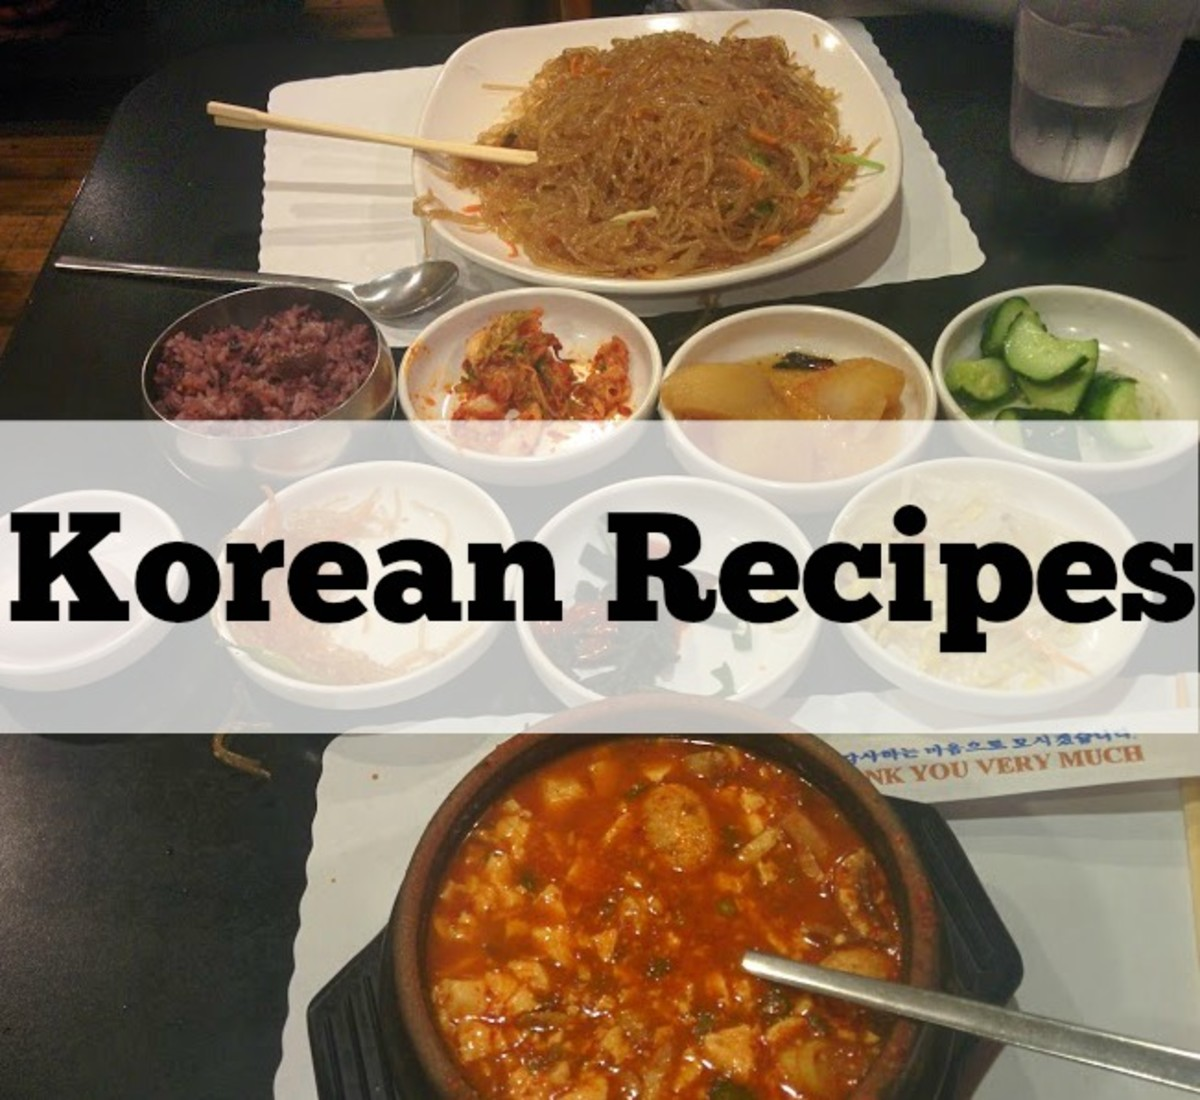 Korean Recipes